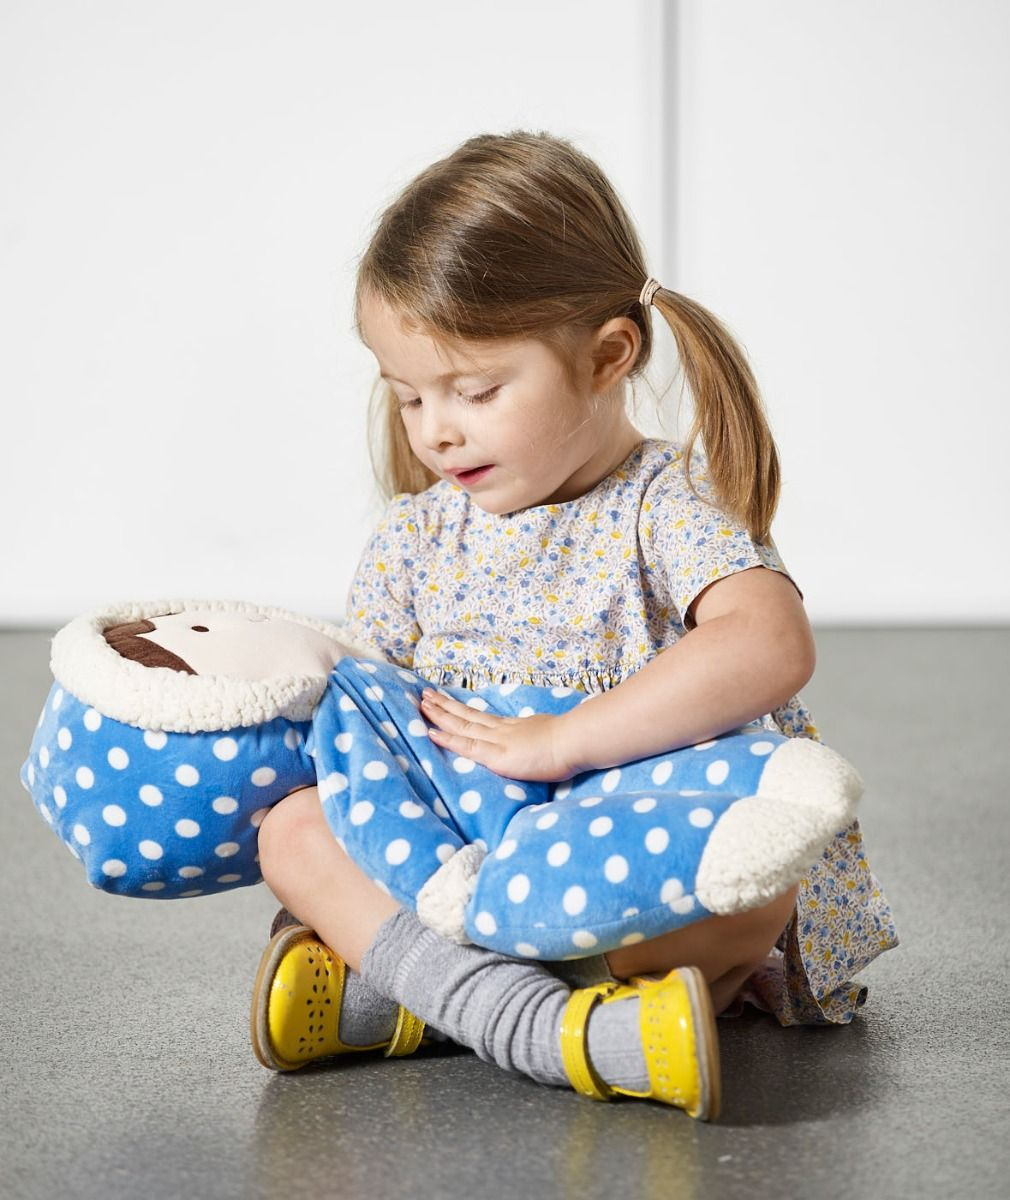 Harry Weighted Empathy Doll - 3lbs